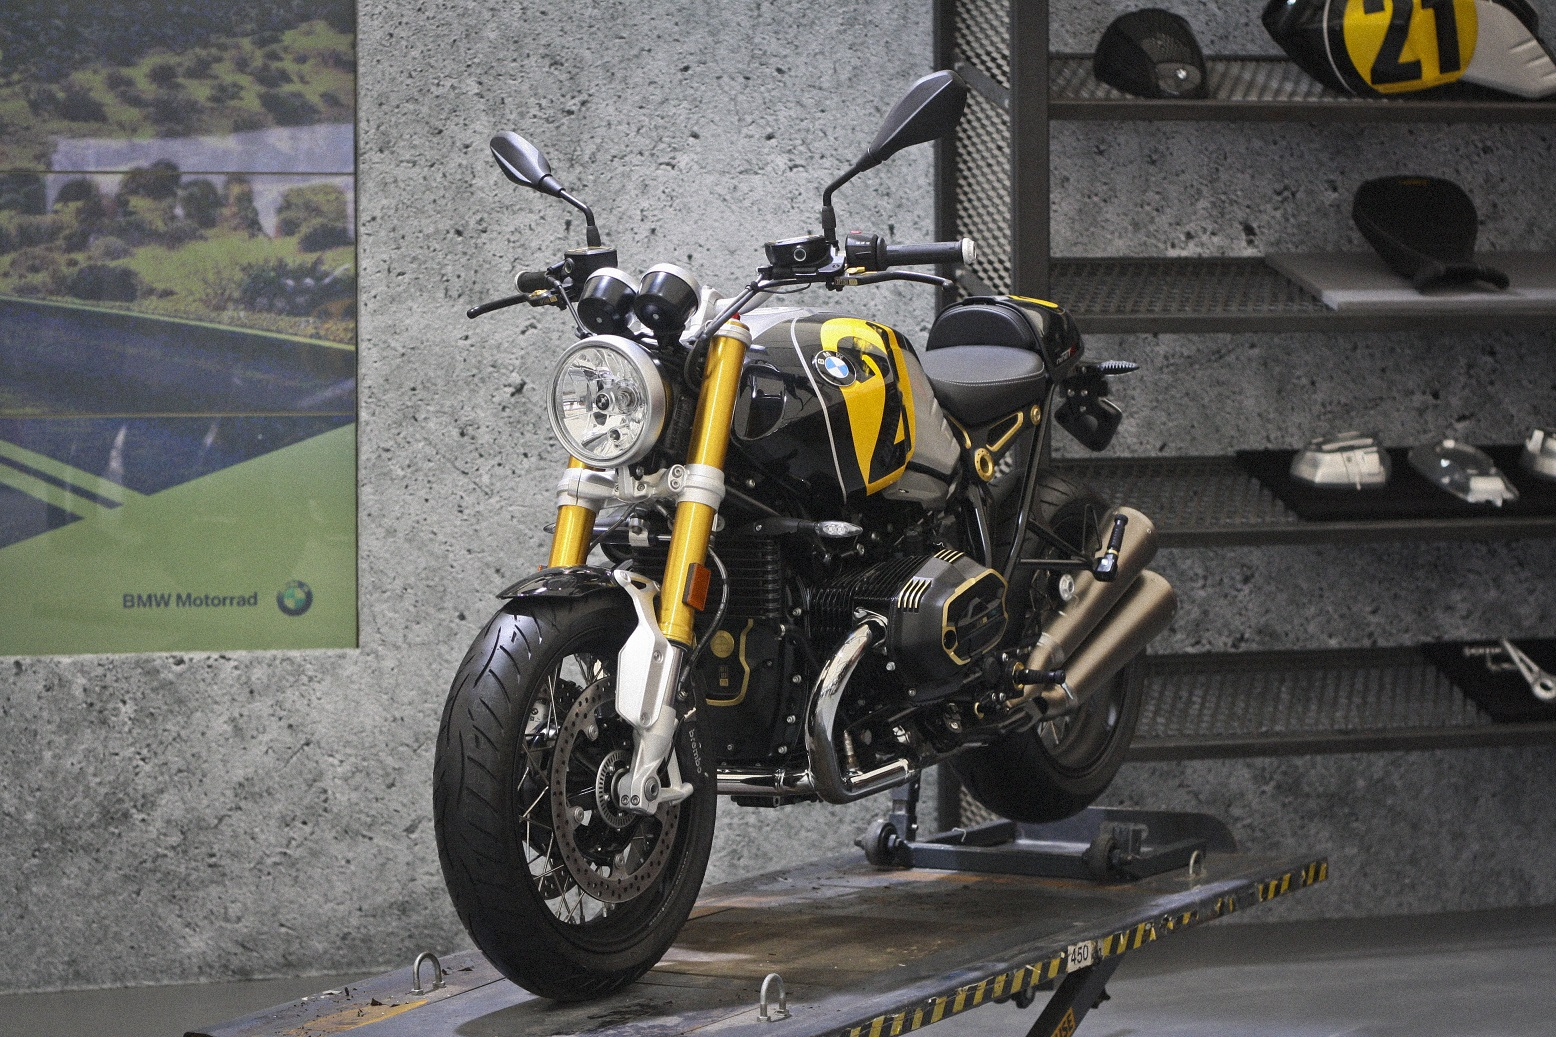 sale used motorcycles for motorcycle bmw supply page of luxury price